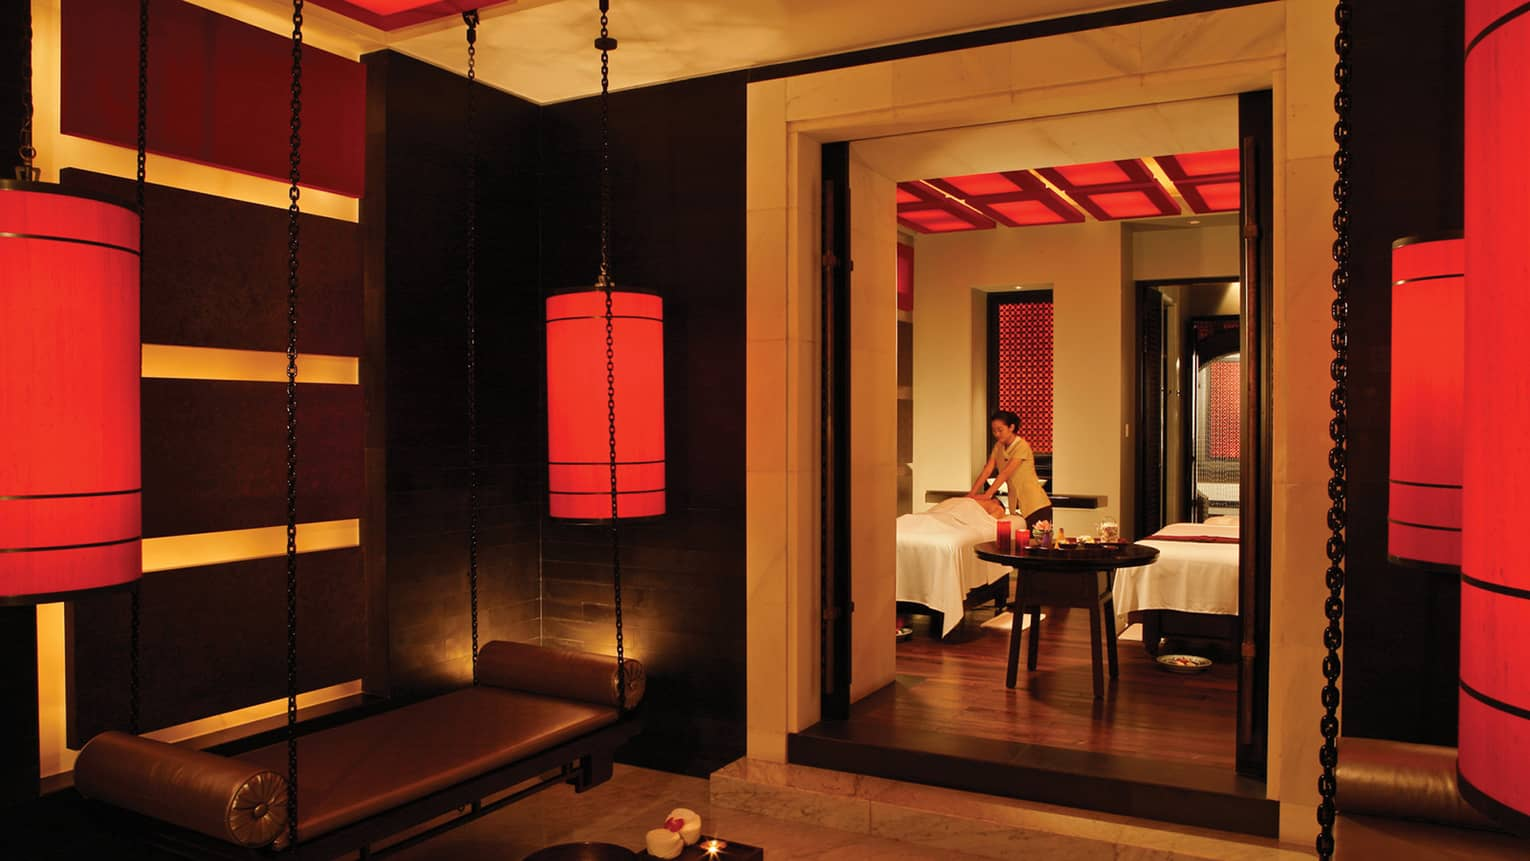 Spa staff gives massage on table behind doorway in dark spa with hanging red lanterns